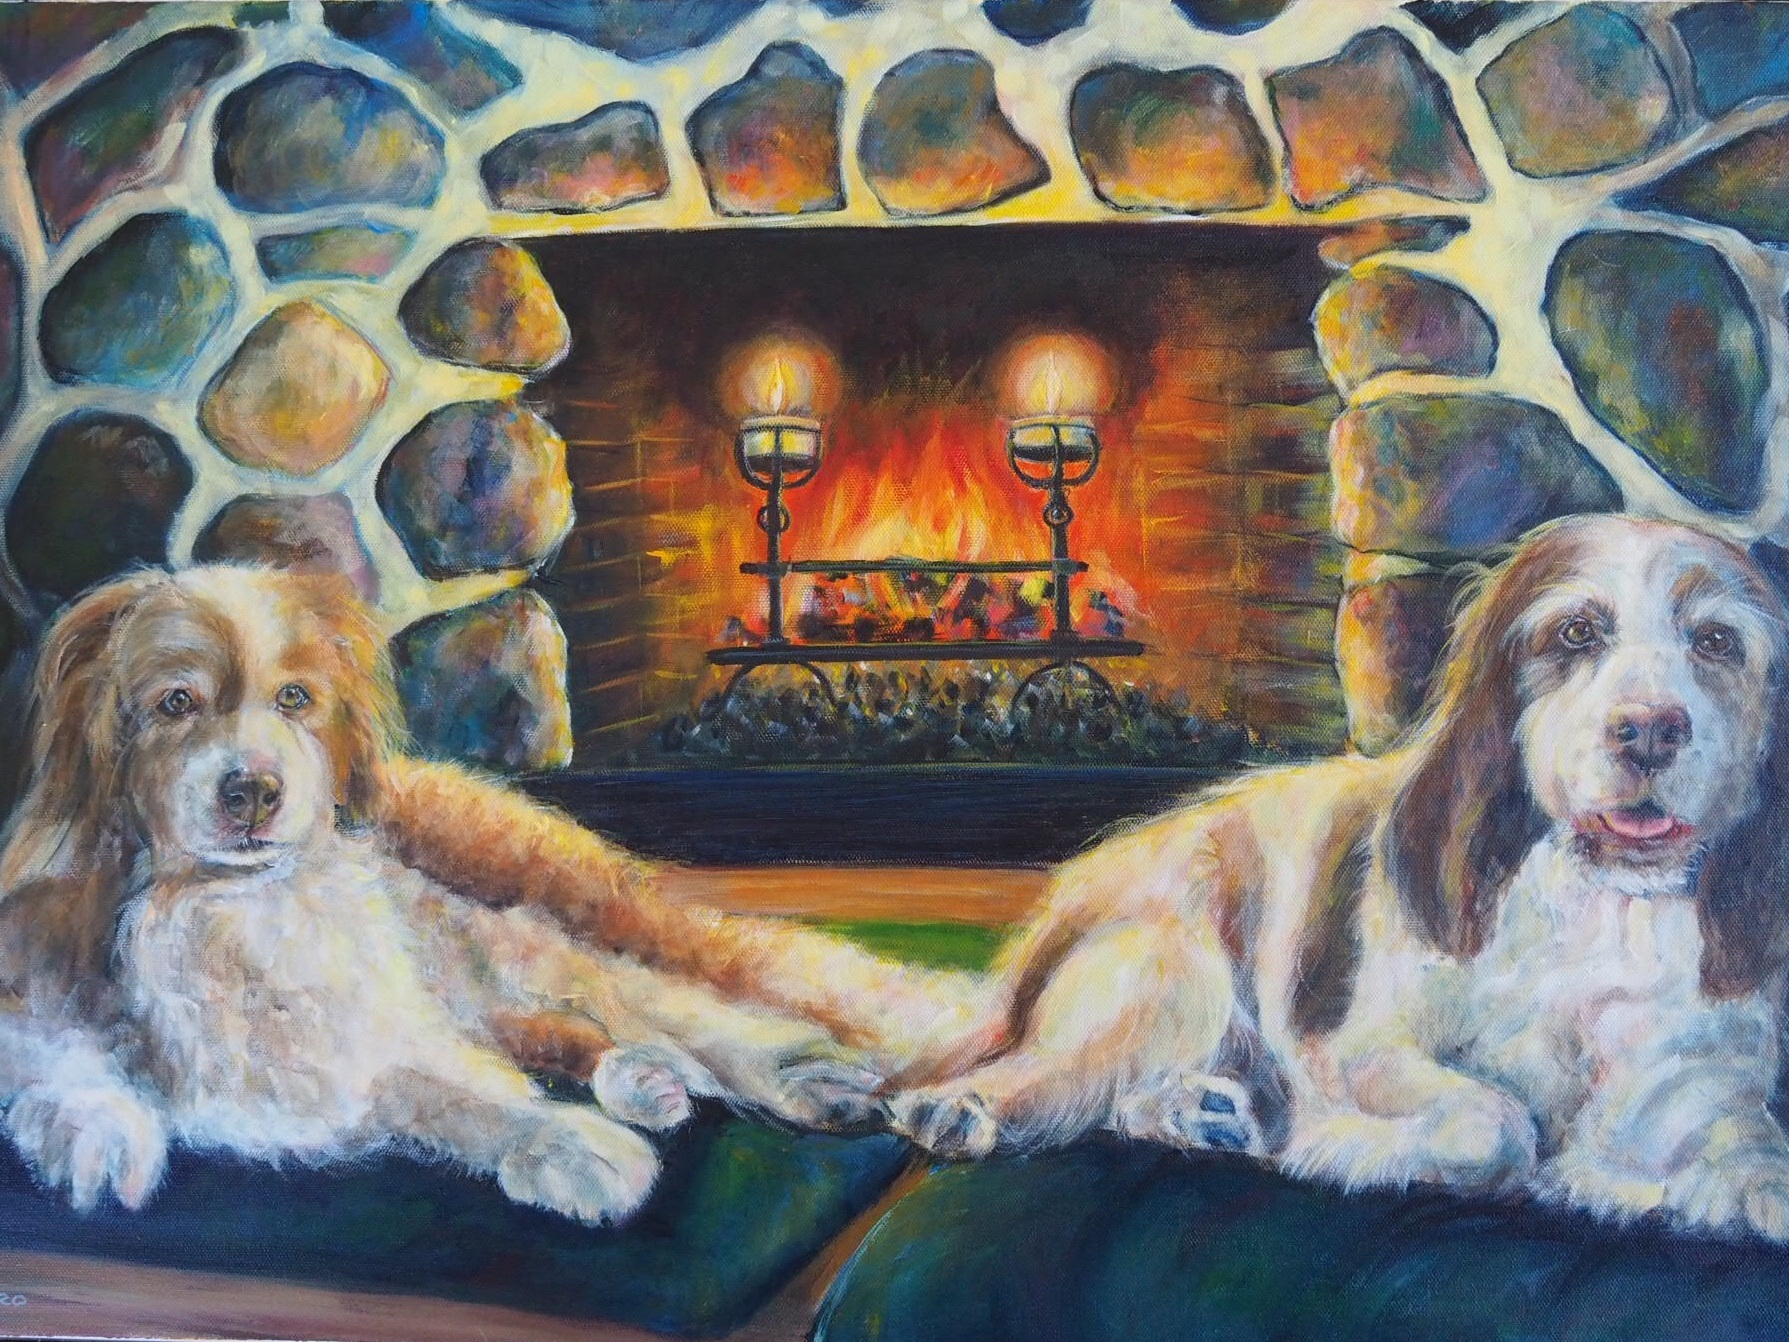 DOGS AND FIREPLACE PAINTING. CUSTOM HANDPAINTED PORTRAIT BY OPAL PASTRO ART